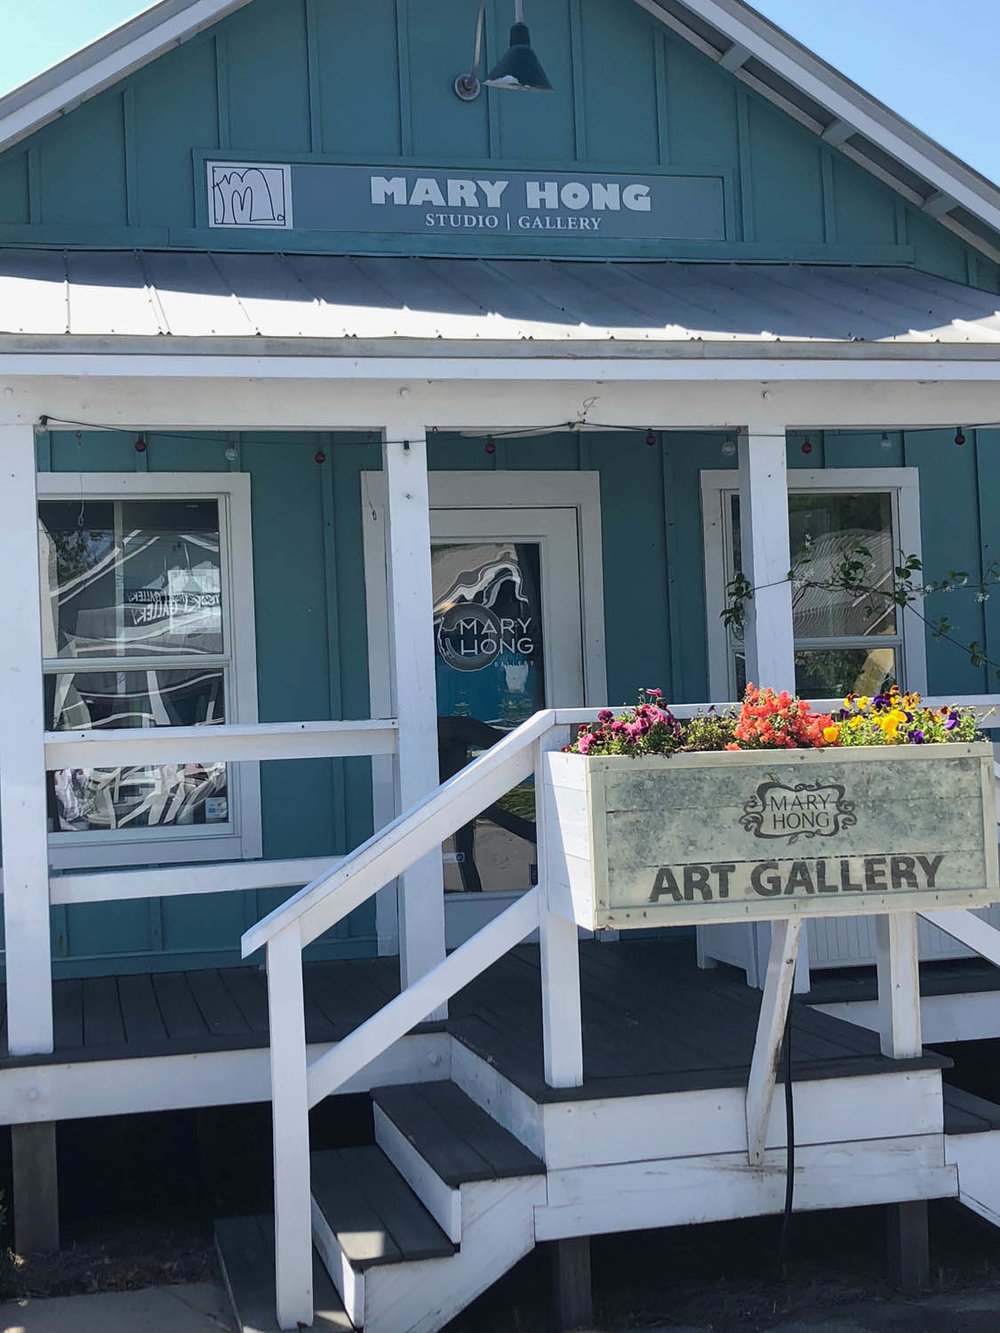 Exterior of Mary Hong's studio in Grayton Beach, Florida